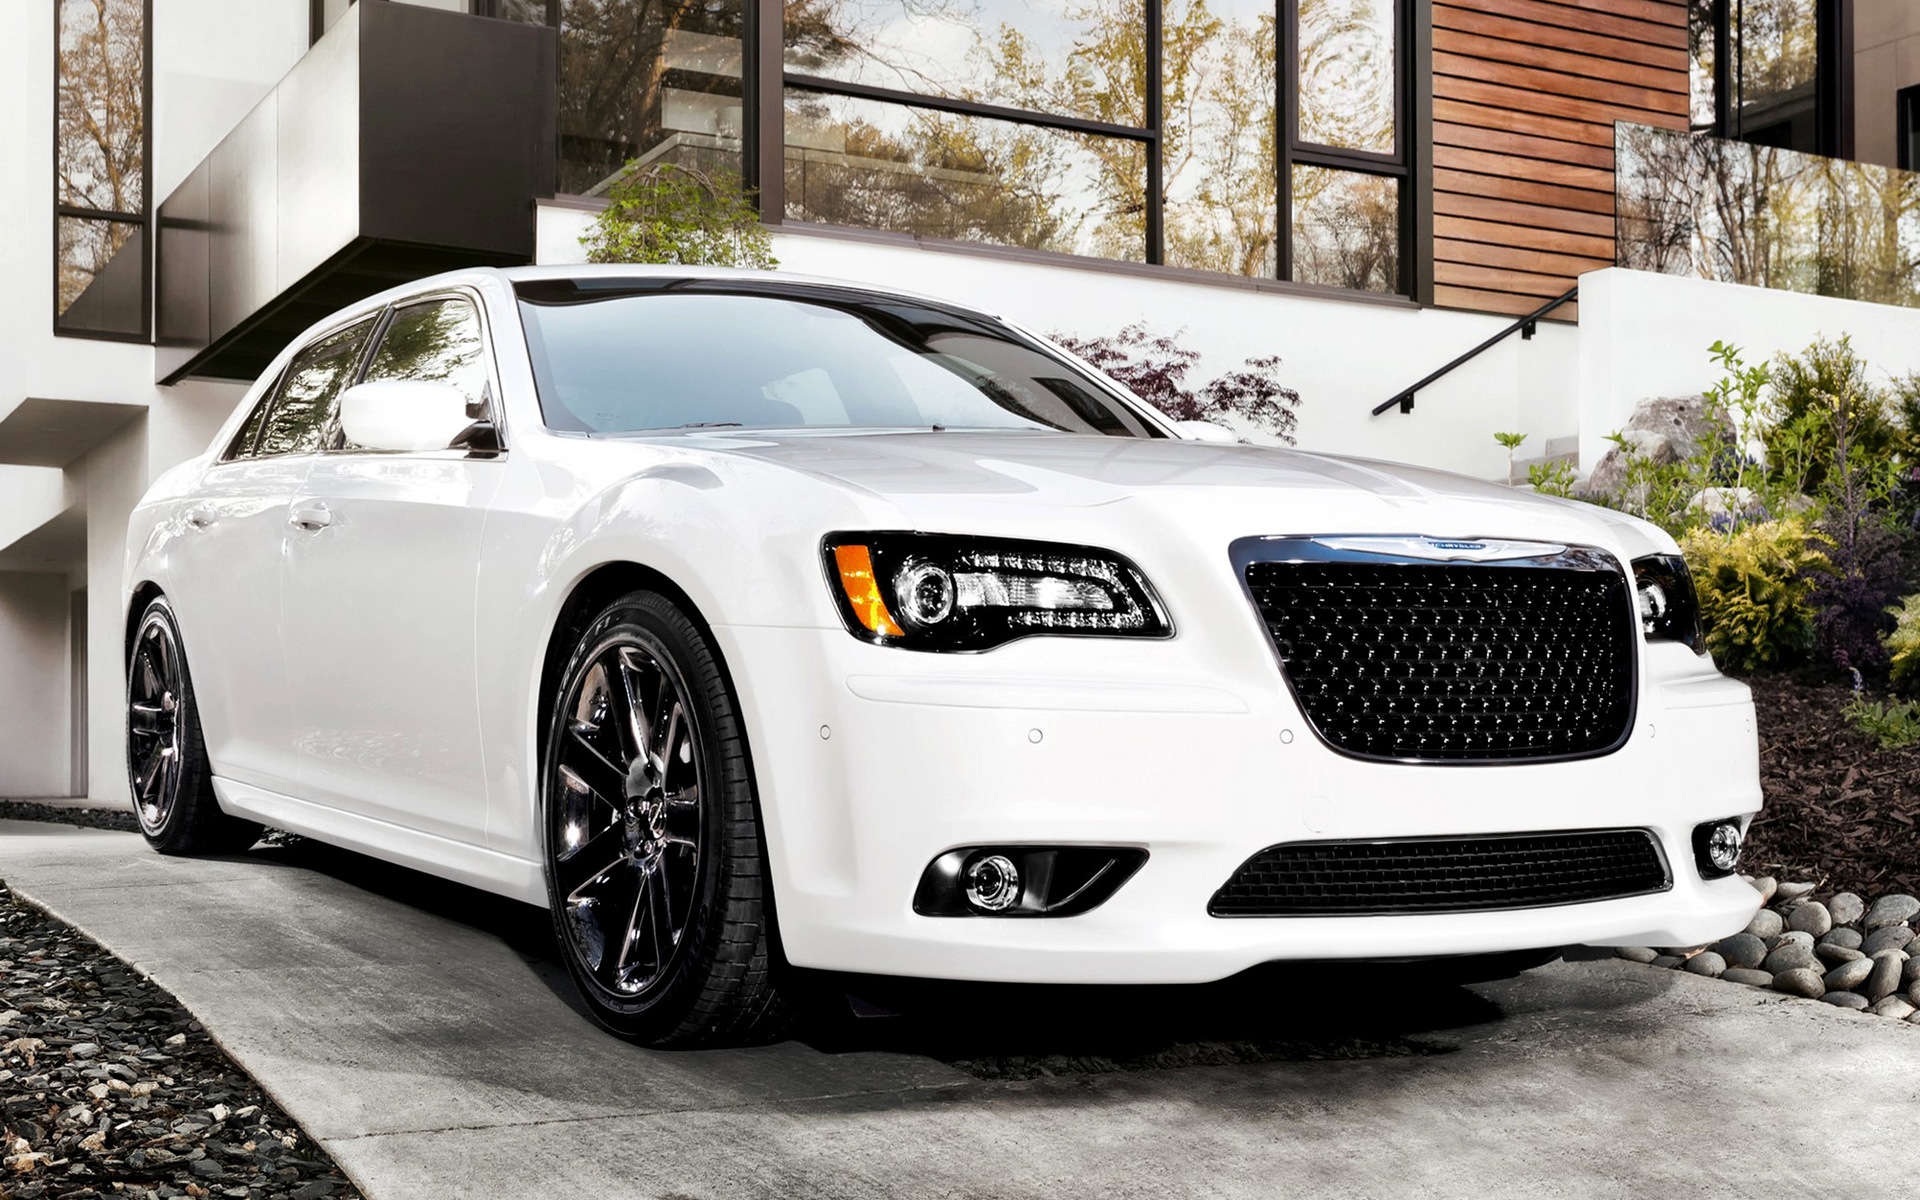 2011 Chrysler 300 Srt8 Wallpapers And Hd Images Car Pixel